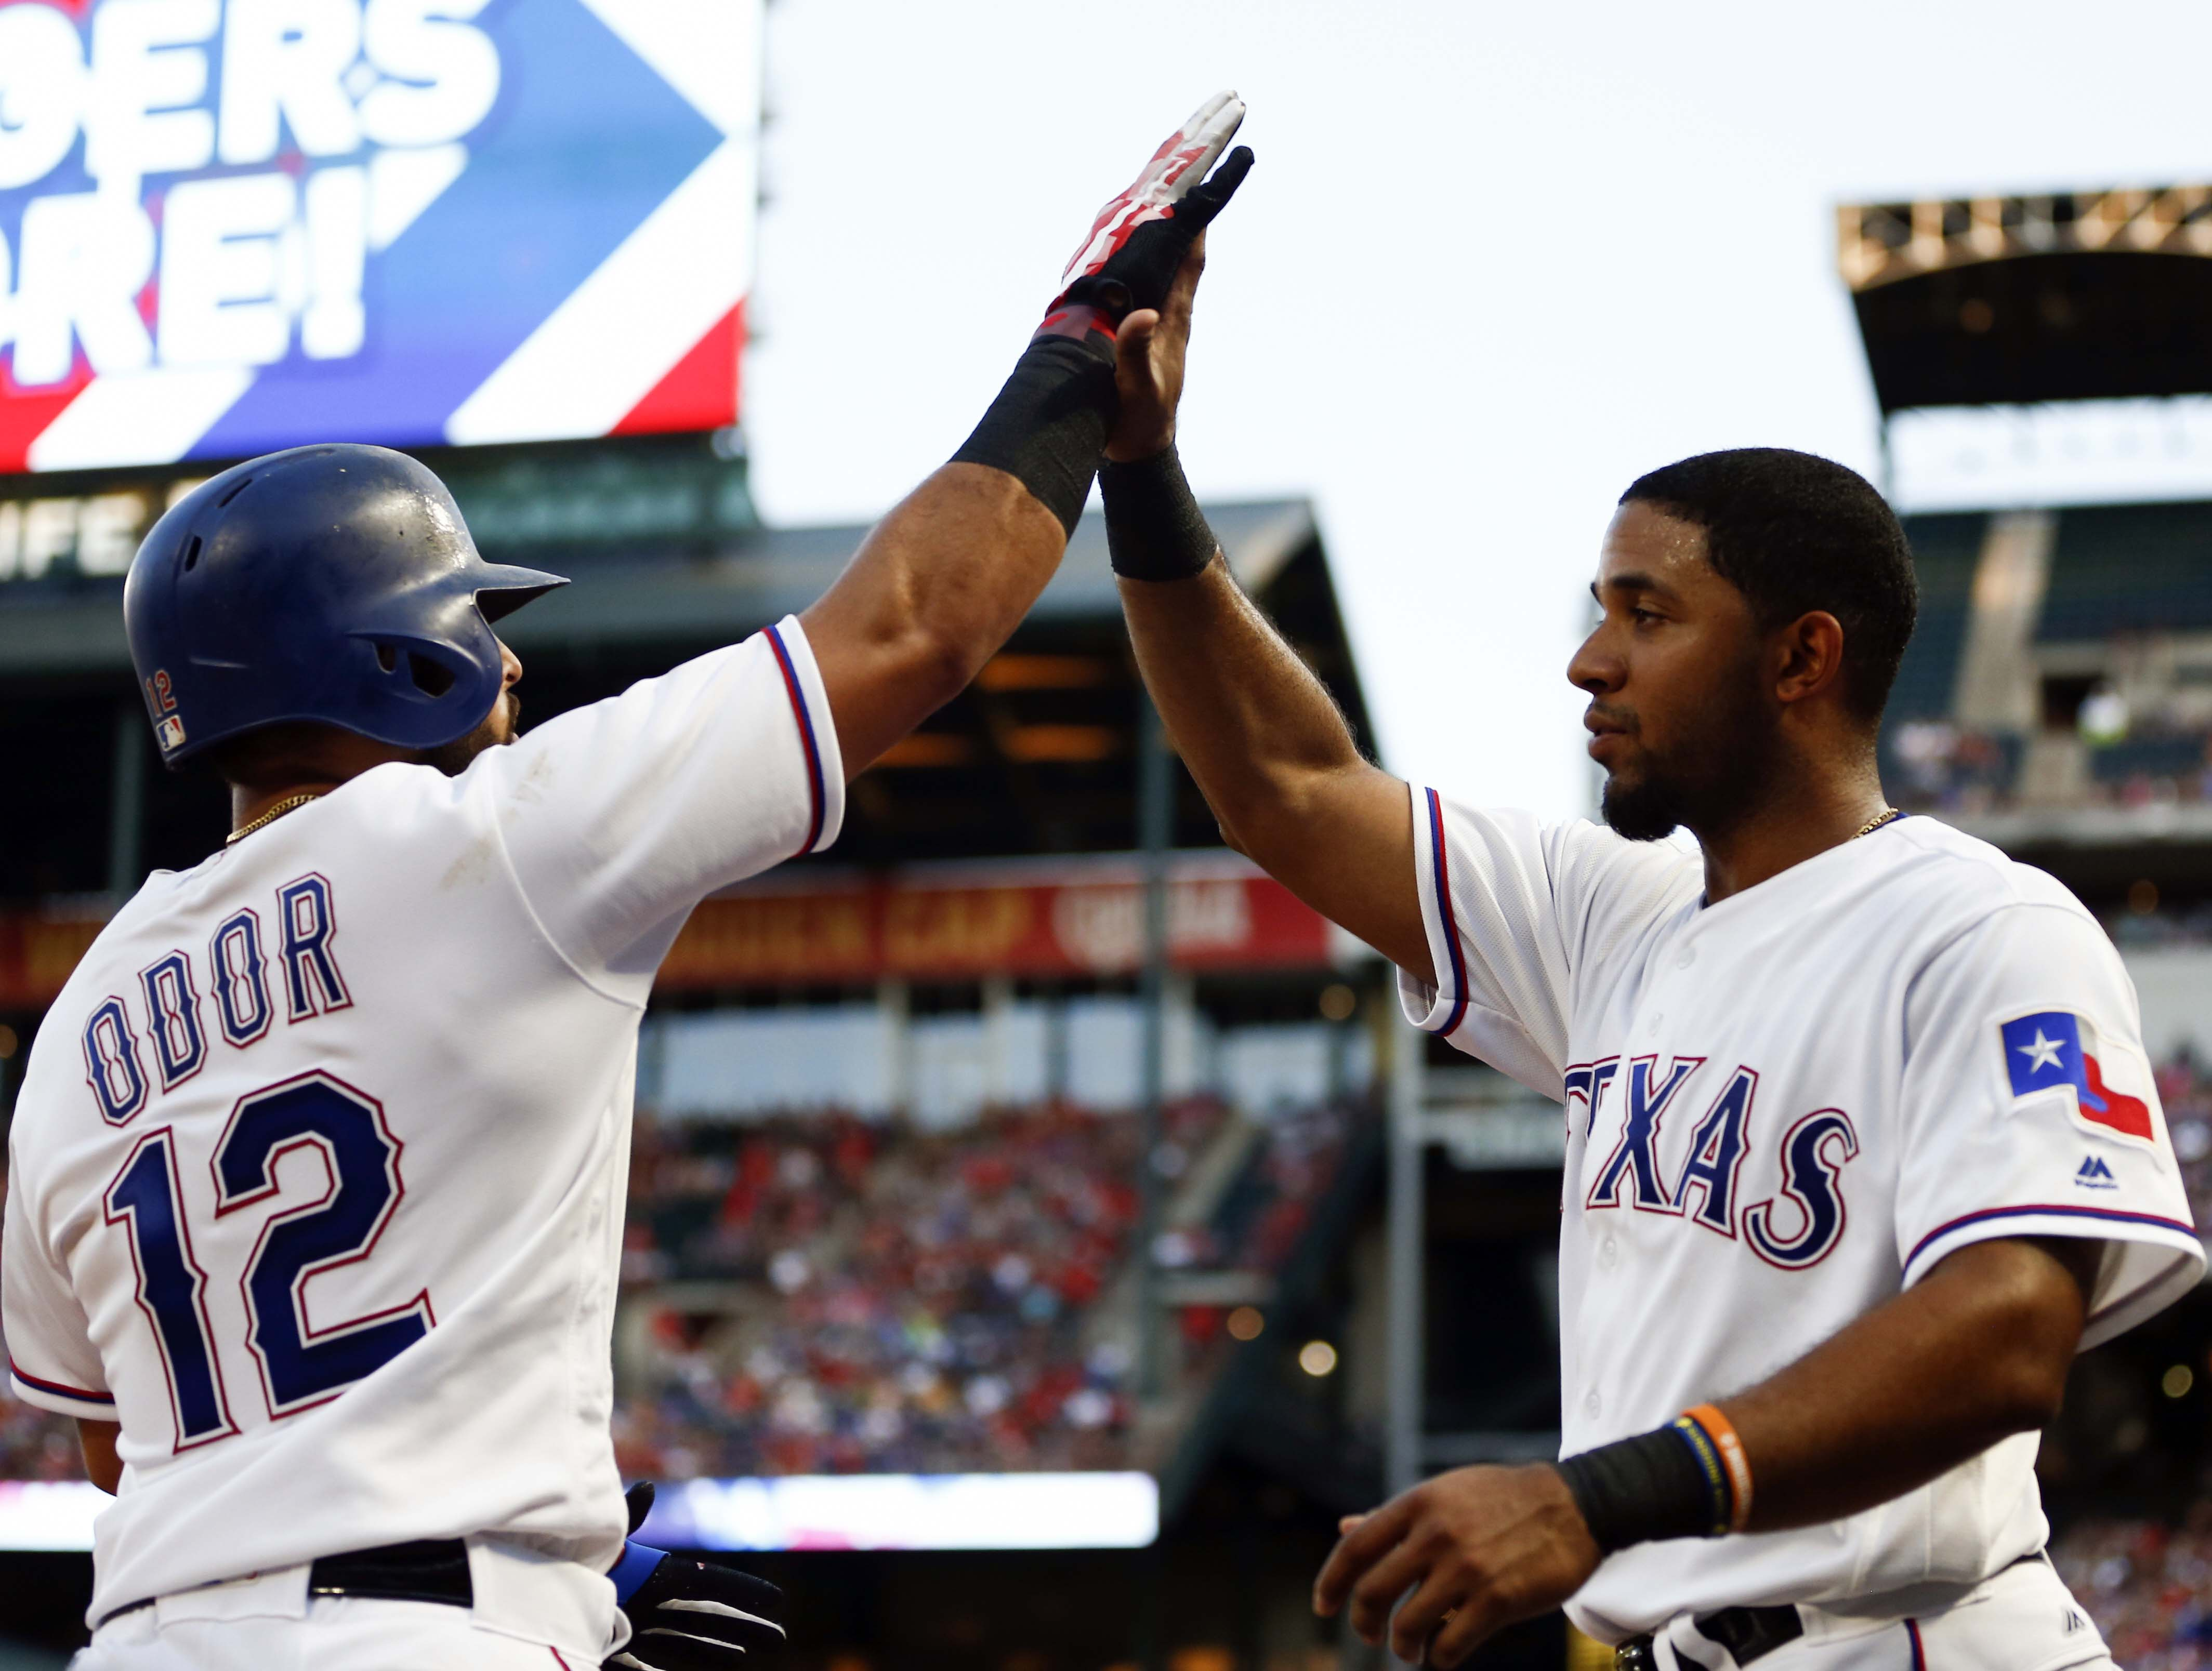 10115288-mlb-seattle-mariners-at-texas-rangers